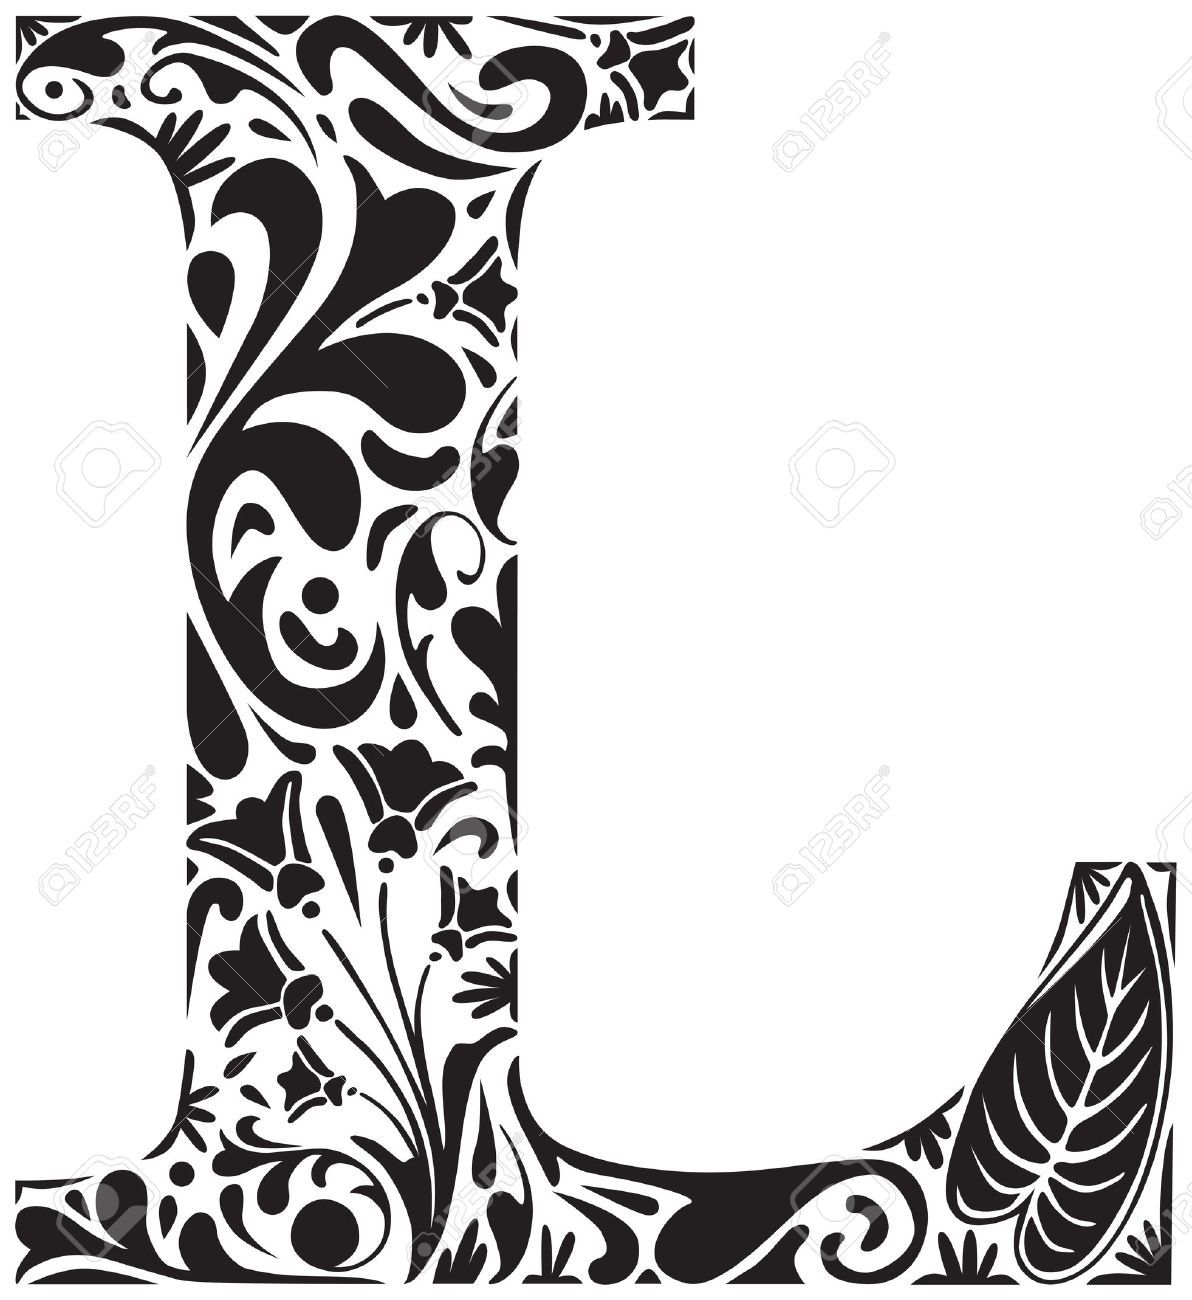 Floral Initial Capital Letter L Stock Vector